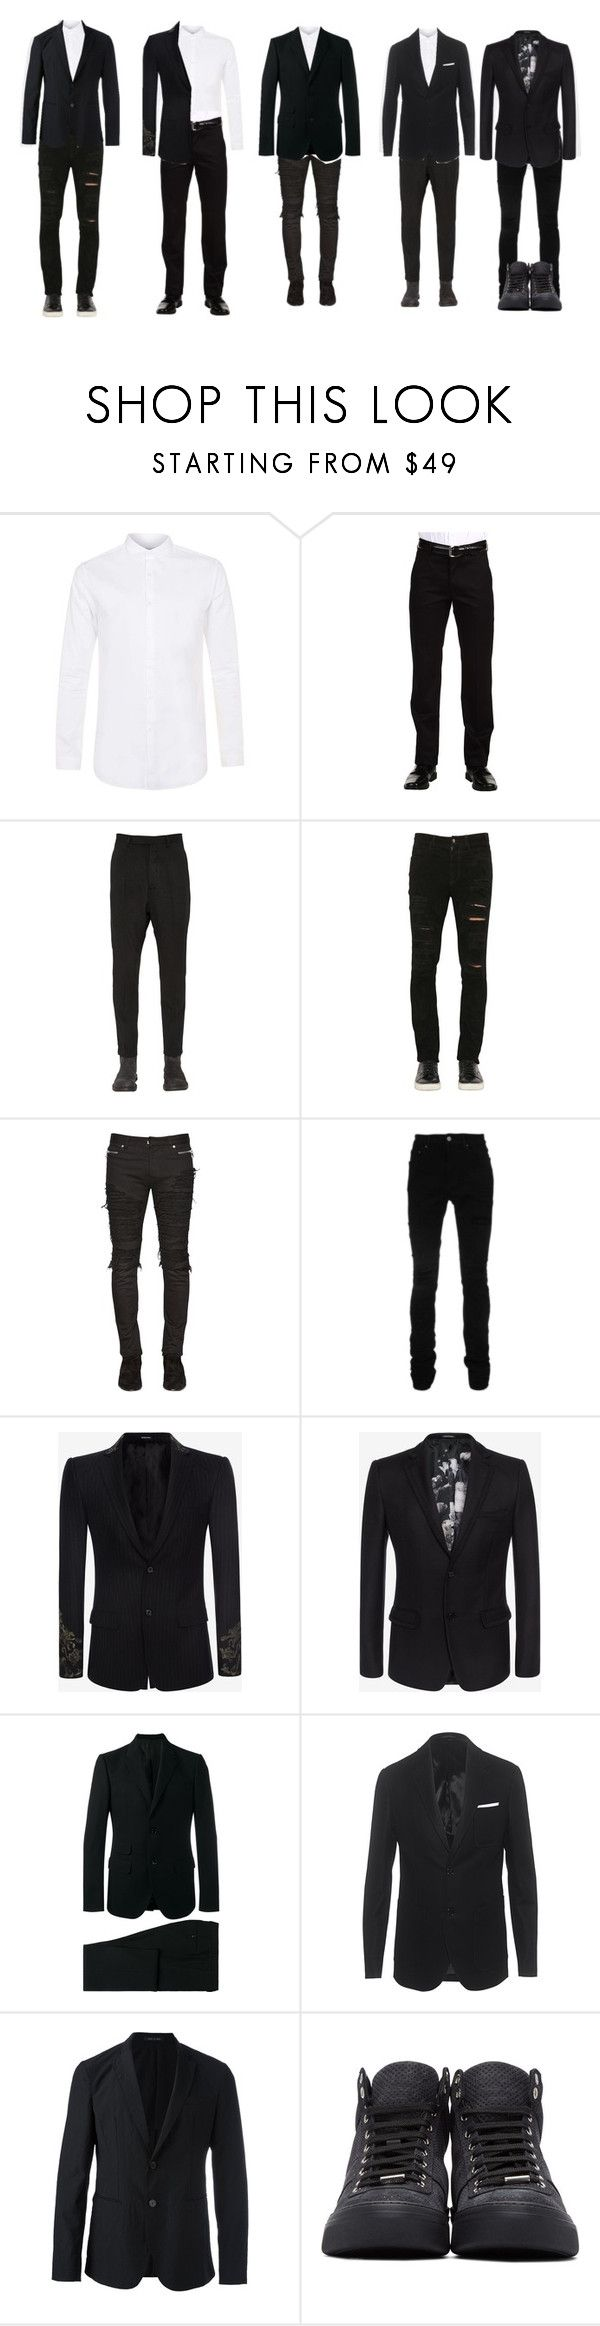 """""""RA5CAL - K-pop Chart Awards"""" by kgroupsofficial ❤ liked on Polyvore featuring Topman, Dockers, Rick Owens, Giorgio Brato, Balmain, AMIRI, Alexander McQueen, Gucci, Neil Barrett and Emporio Armani"""